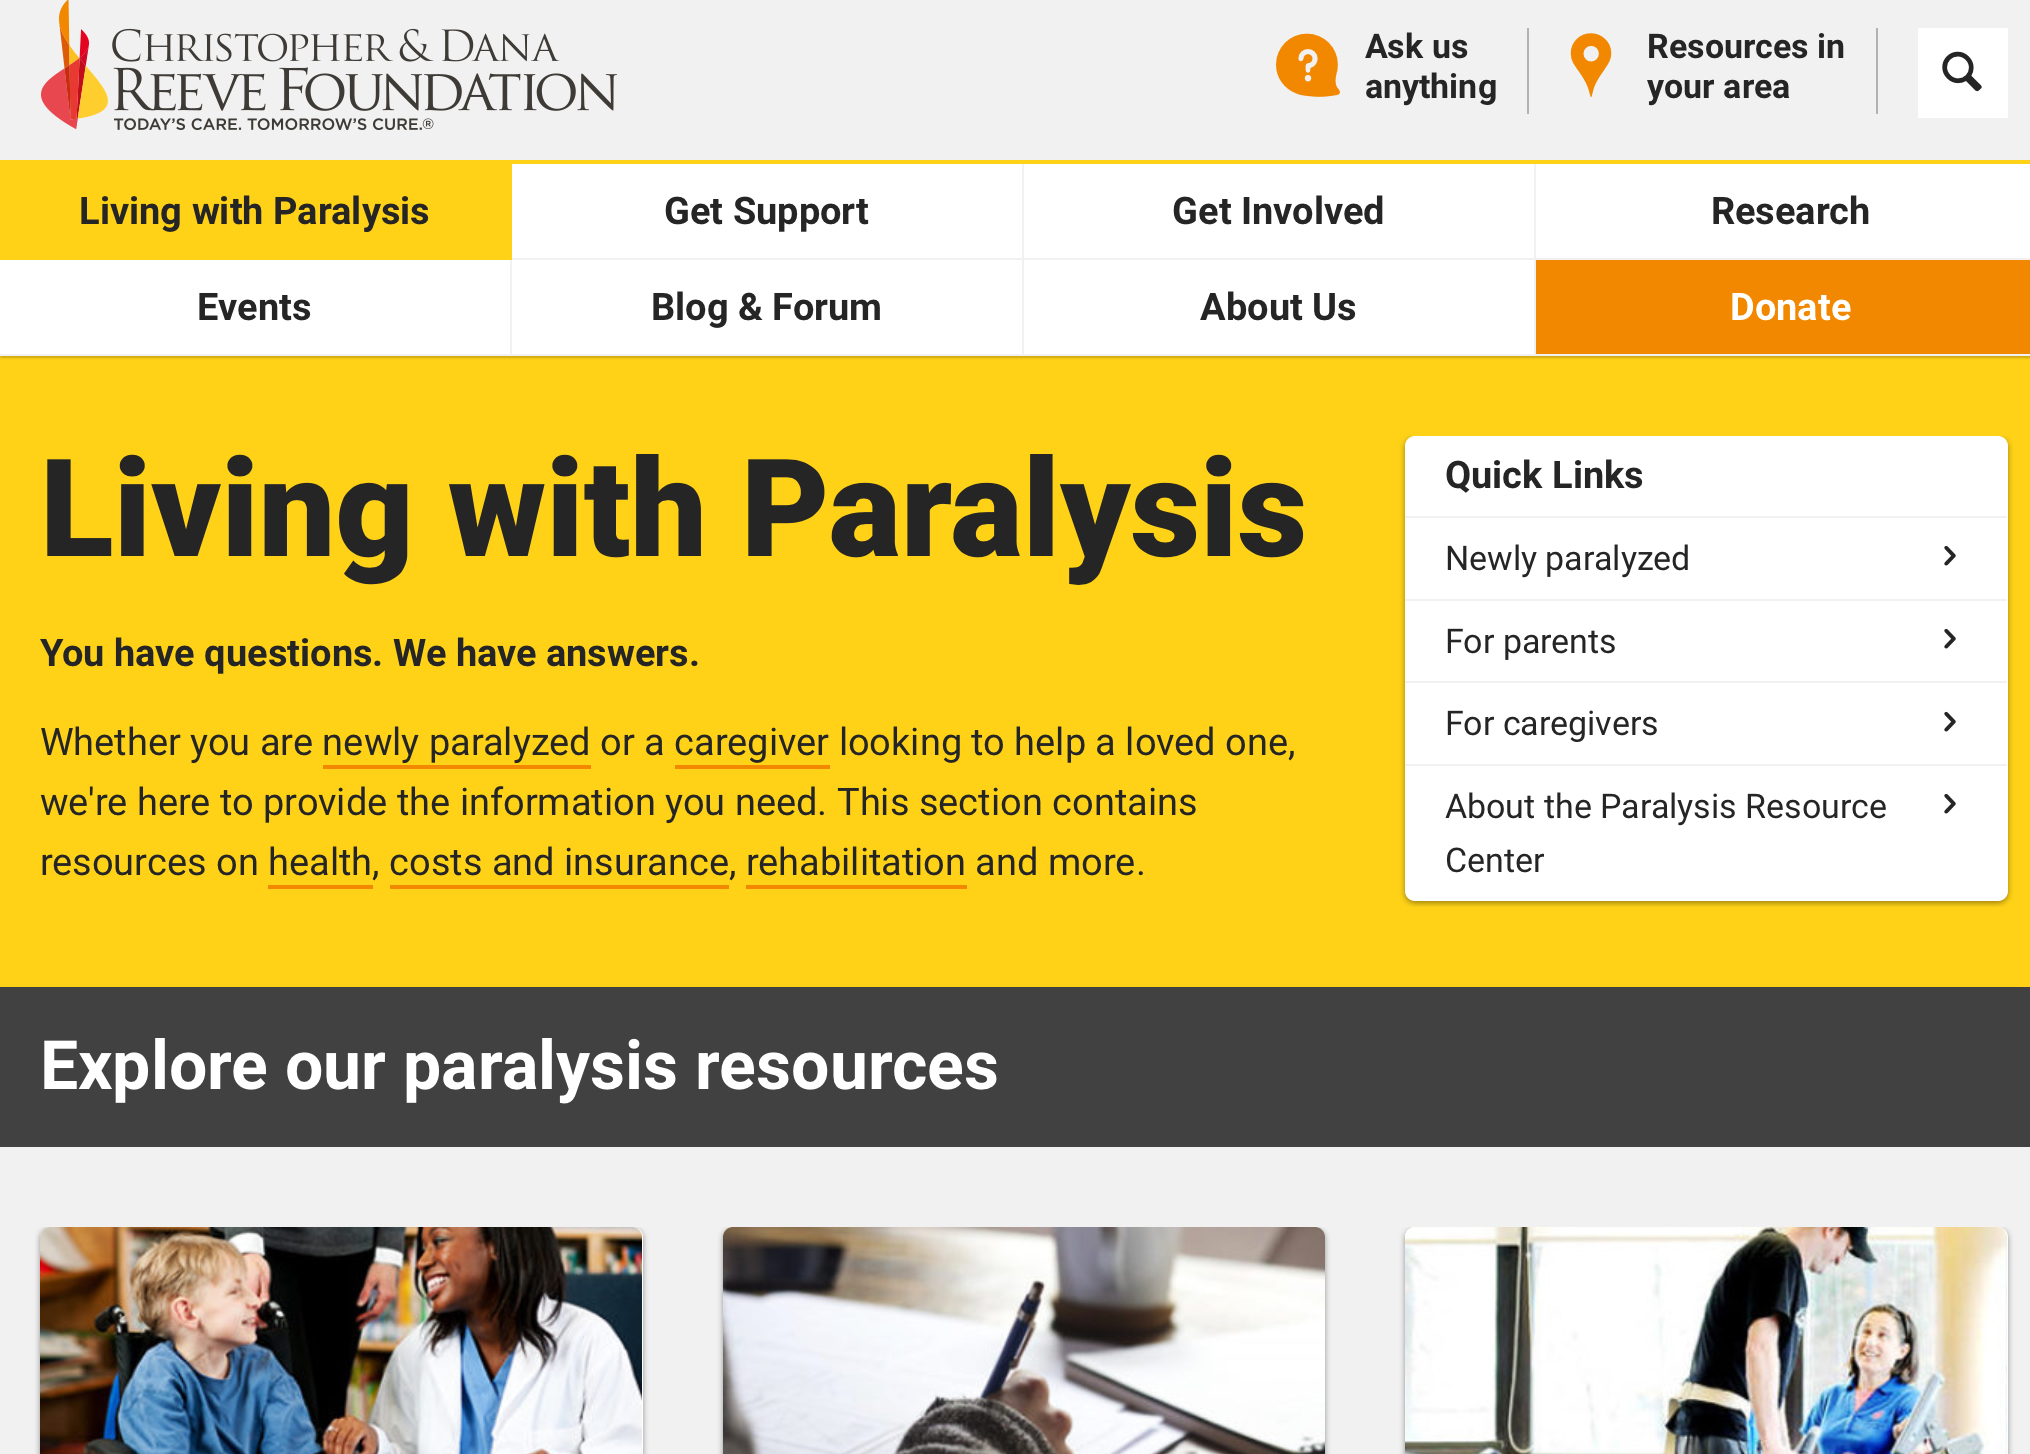 Christopher & Dana Reeve Foundation - Paralysis Resource Guide    Whether you are newly paralyzed or a caregiver looking to help a loved one, we're here to provide the information you need. This section contains resources on health, costs and insurance, rehabilitation and more.